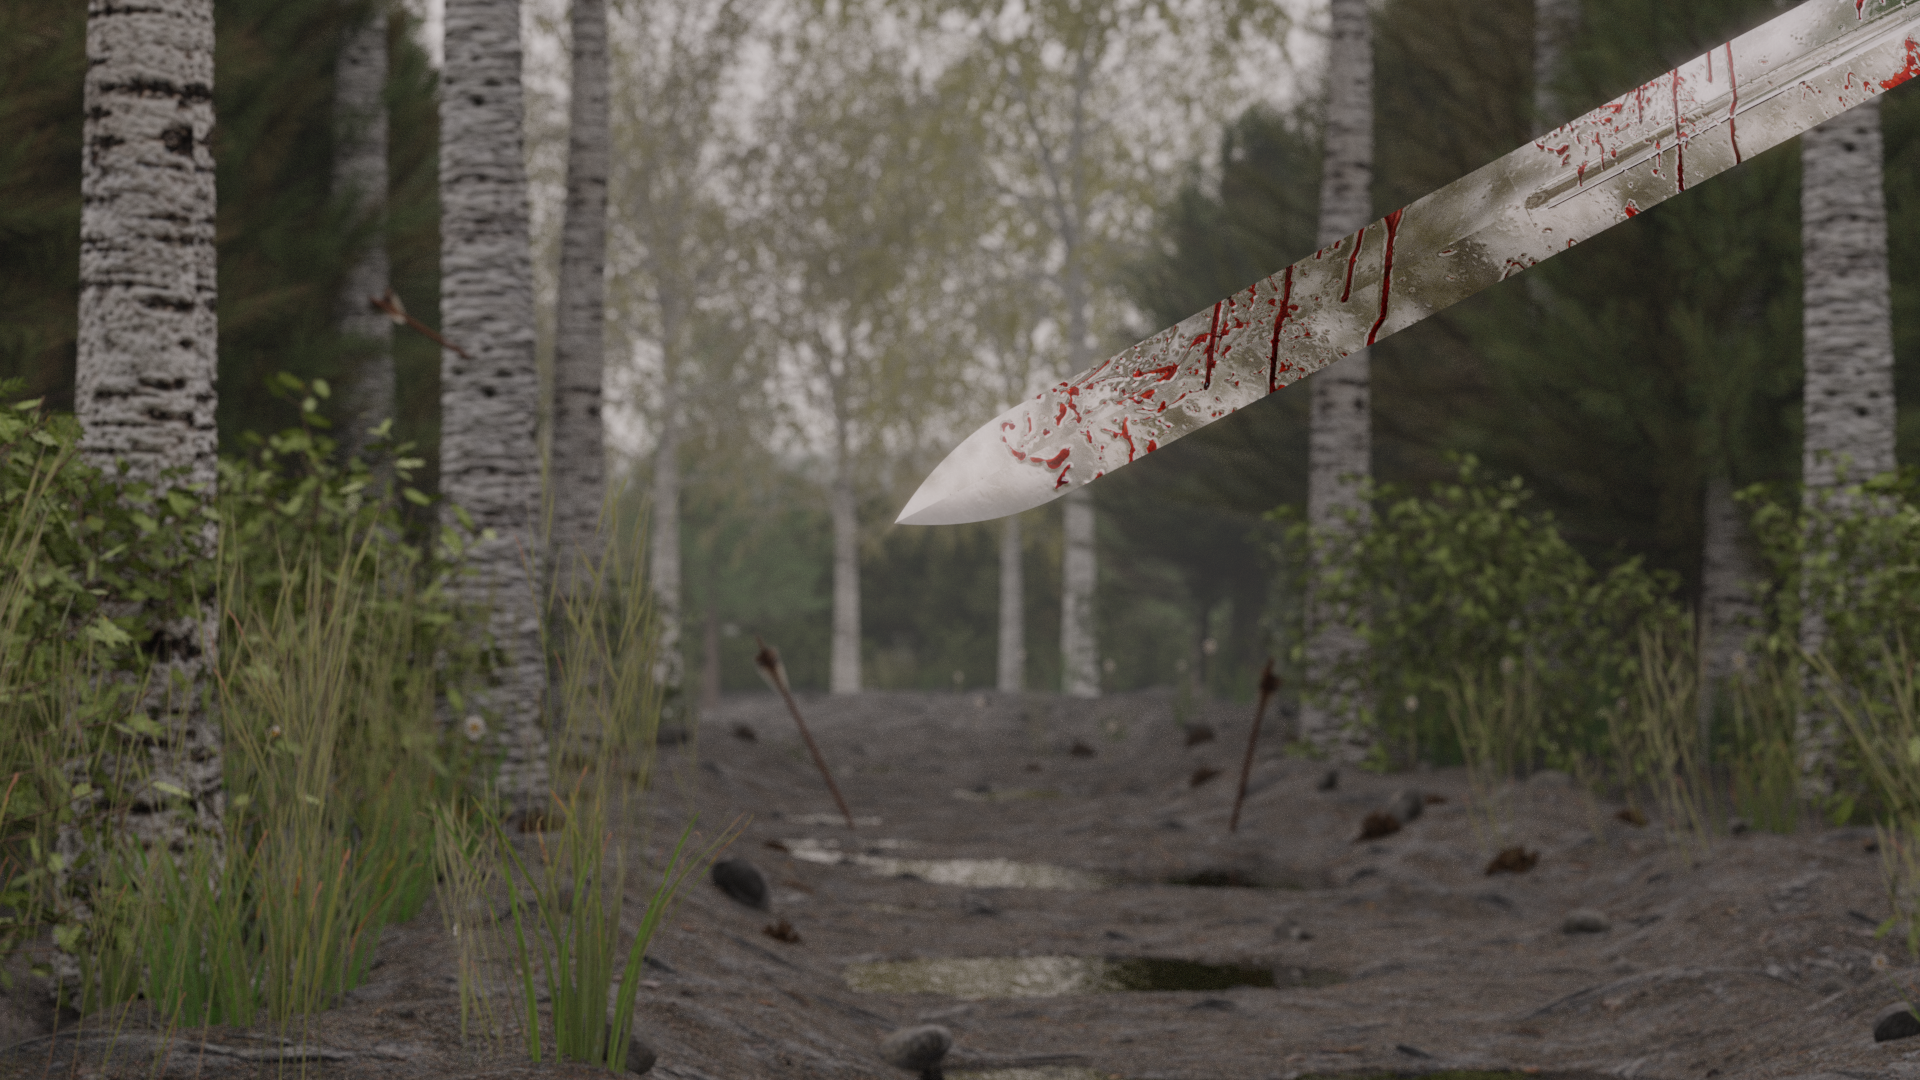 Sword Forest Scene preview image 1